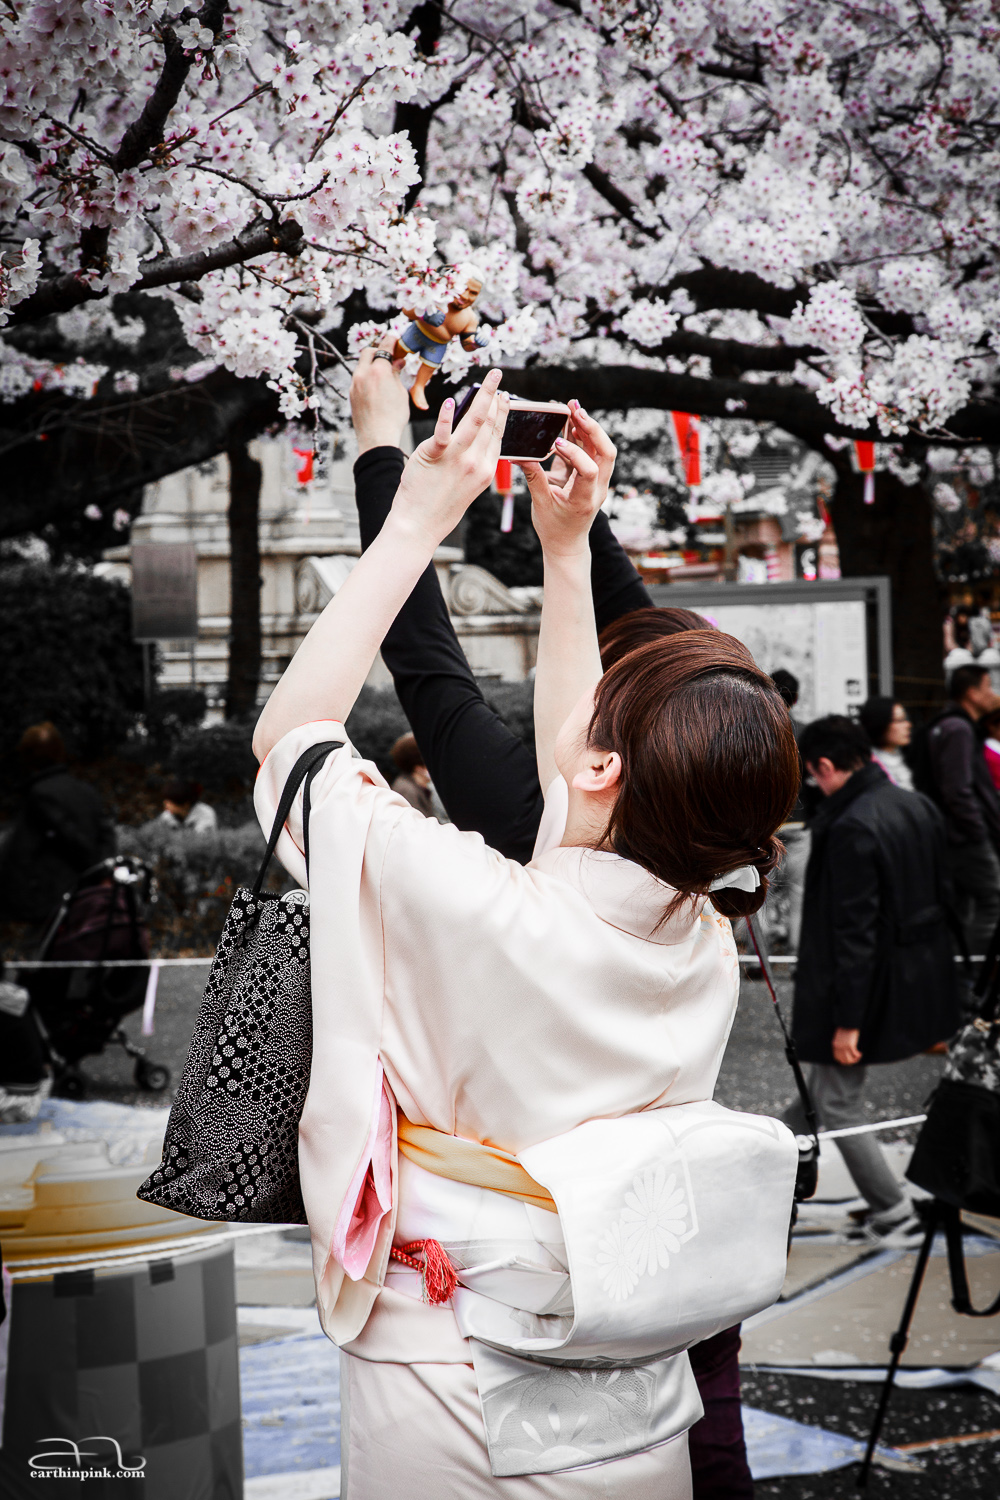 A woman dressed in a traditional kimono takes a photo of the cherry blossoms with her iPhone. Not sure why the little figurine of a boxer is part of the composition.